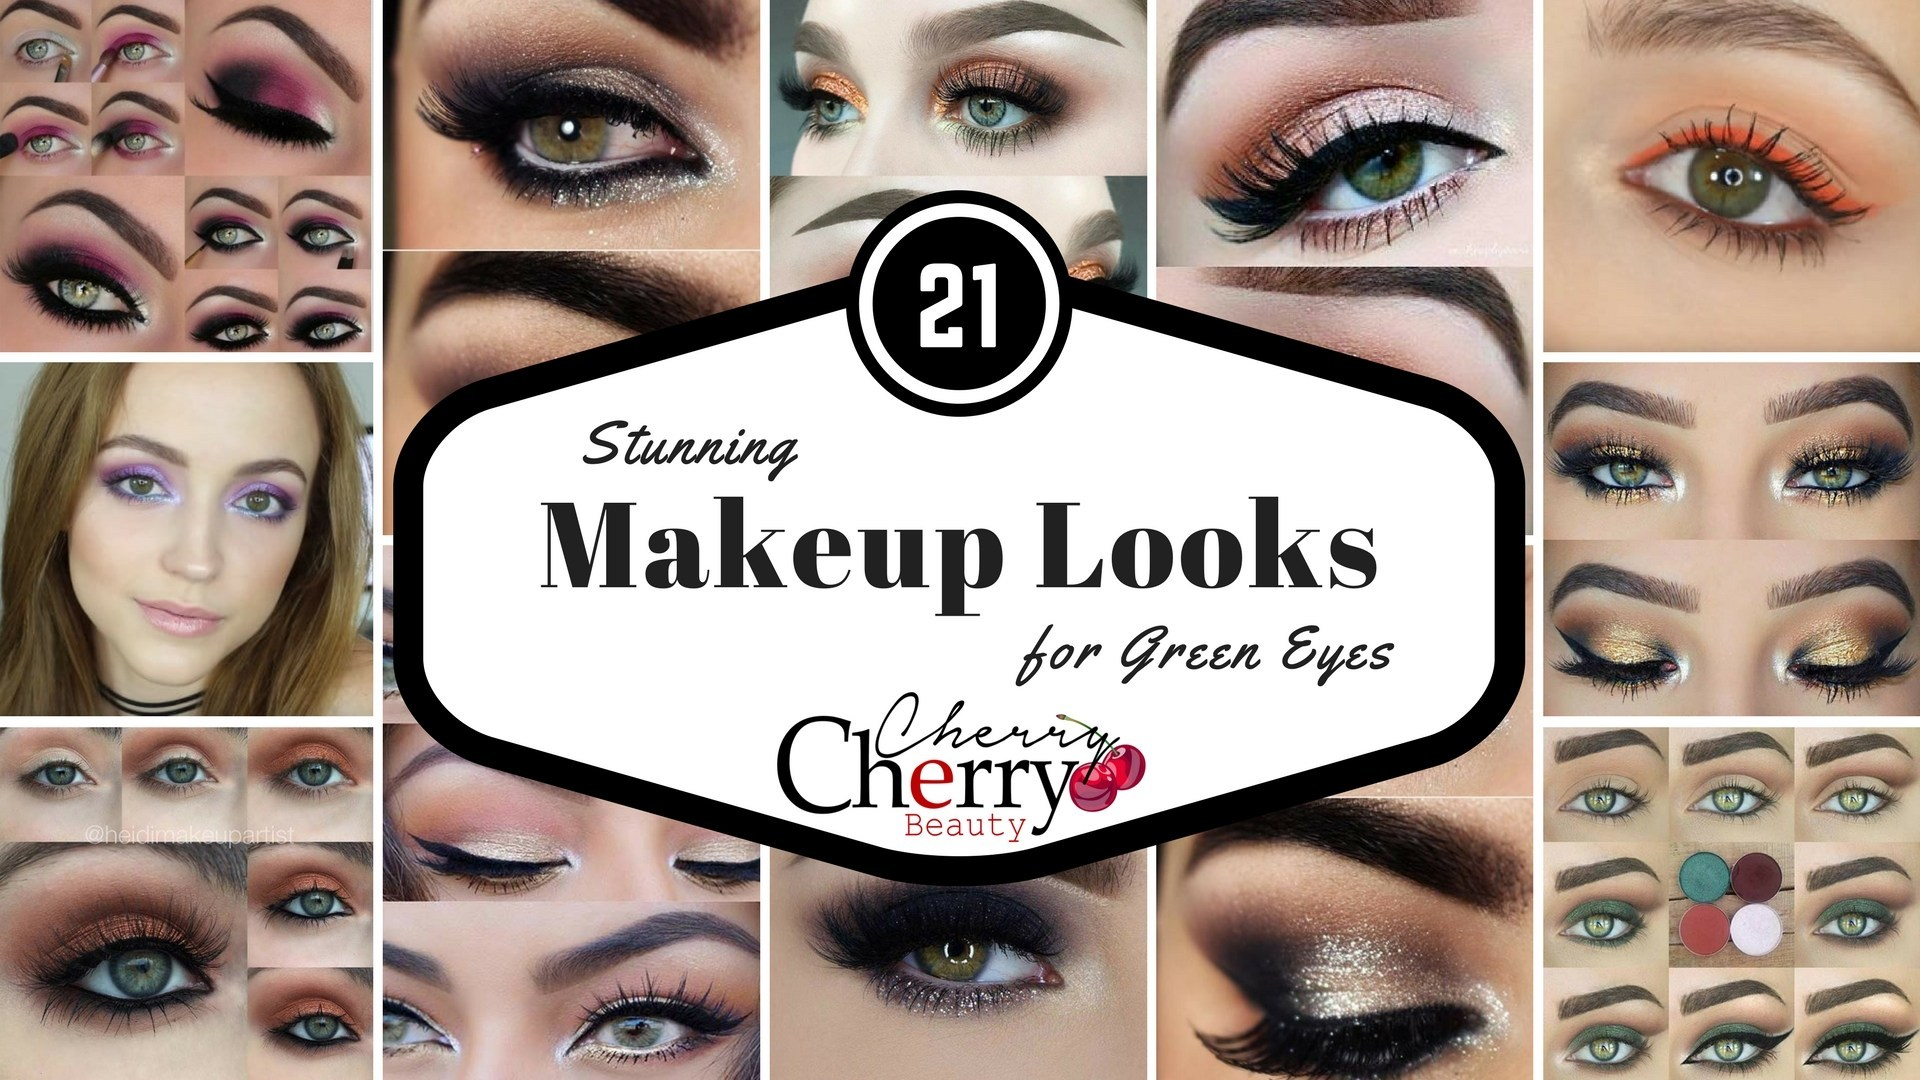 21 stunning makeup looks for green eyes - cherrycherrybeauty